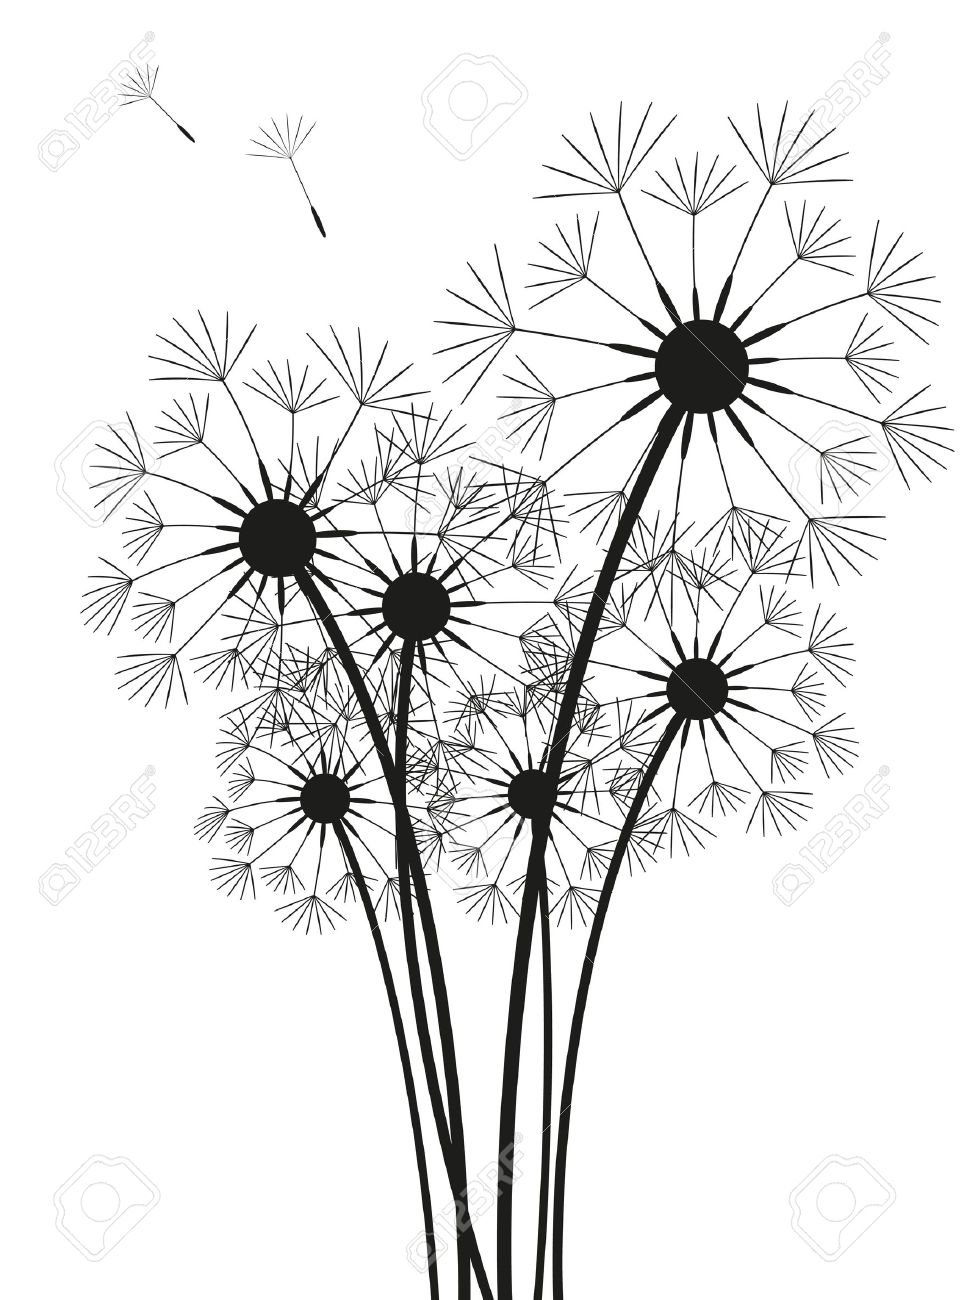 975x1300 Dandelions Silhouette Isolated On White Royalty Free Cliparts